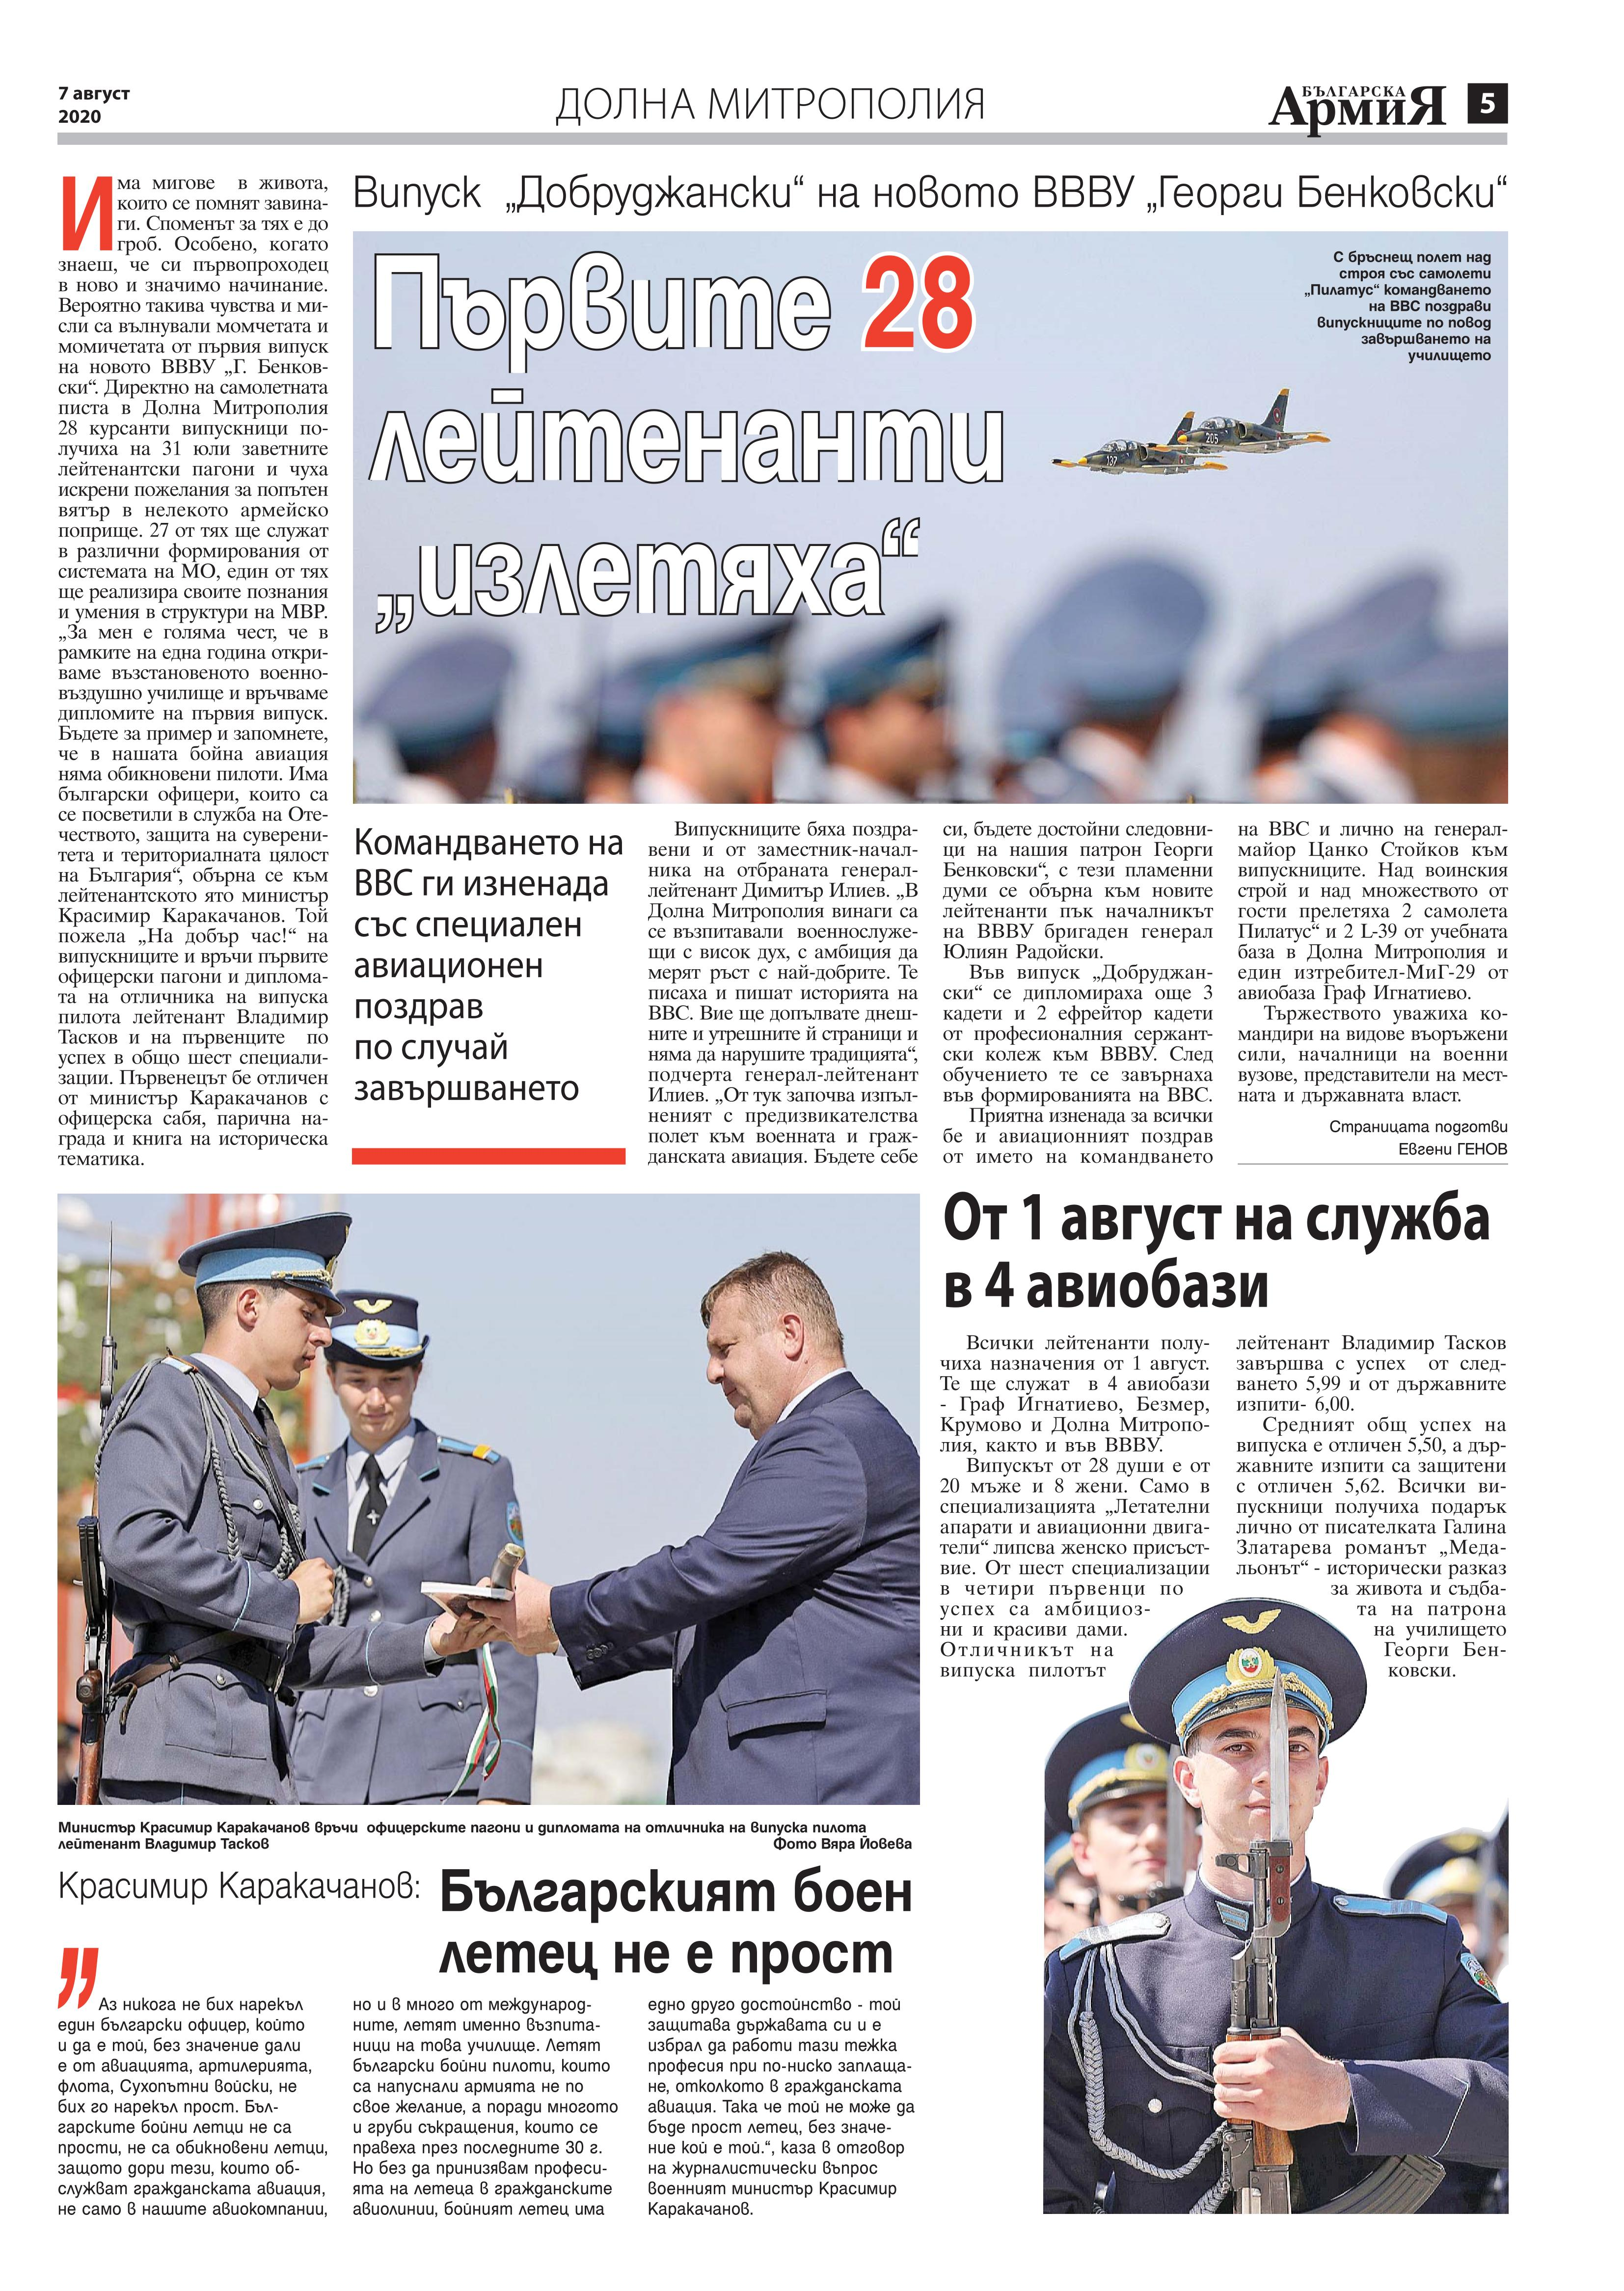 https://www.armymedia.bg/wp-content/uploads/2015/06/05.page1_-145.jpg